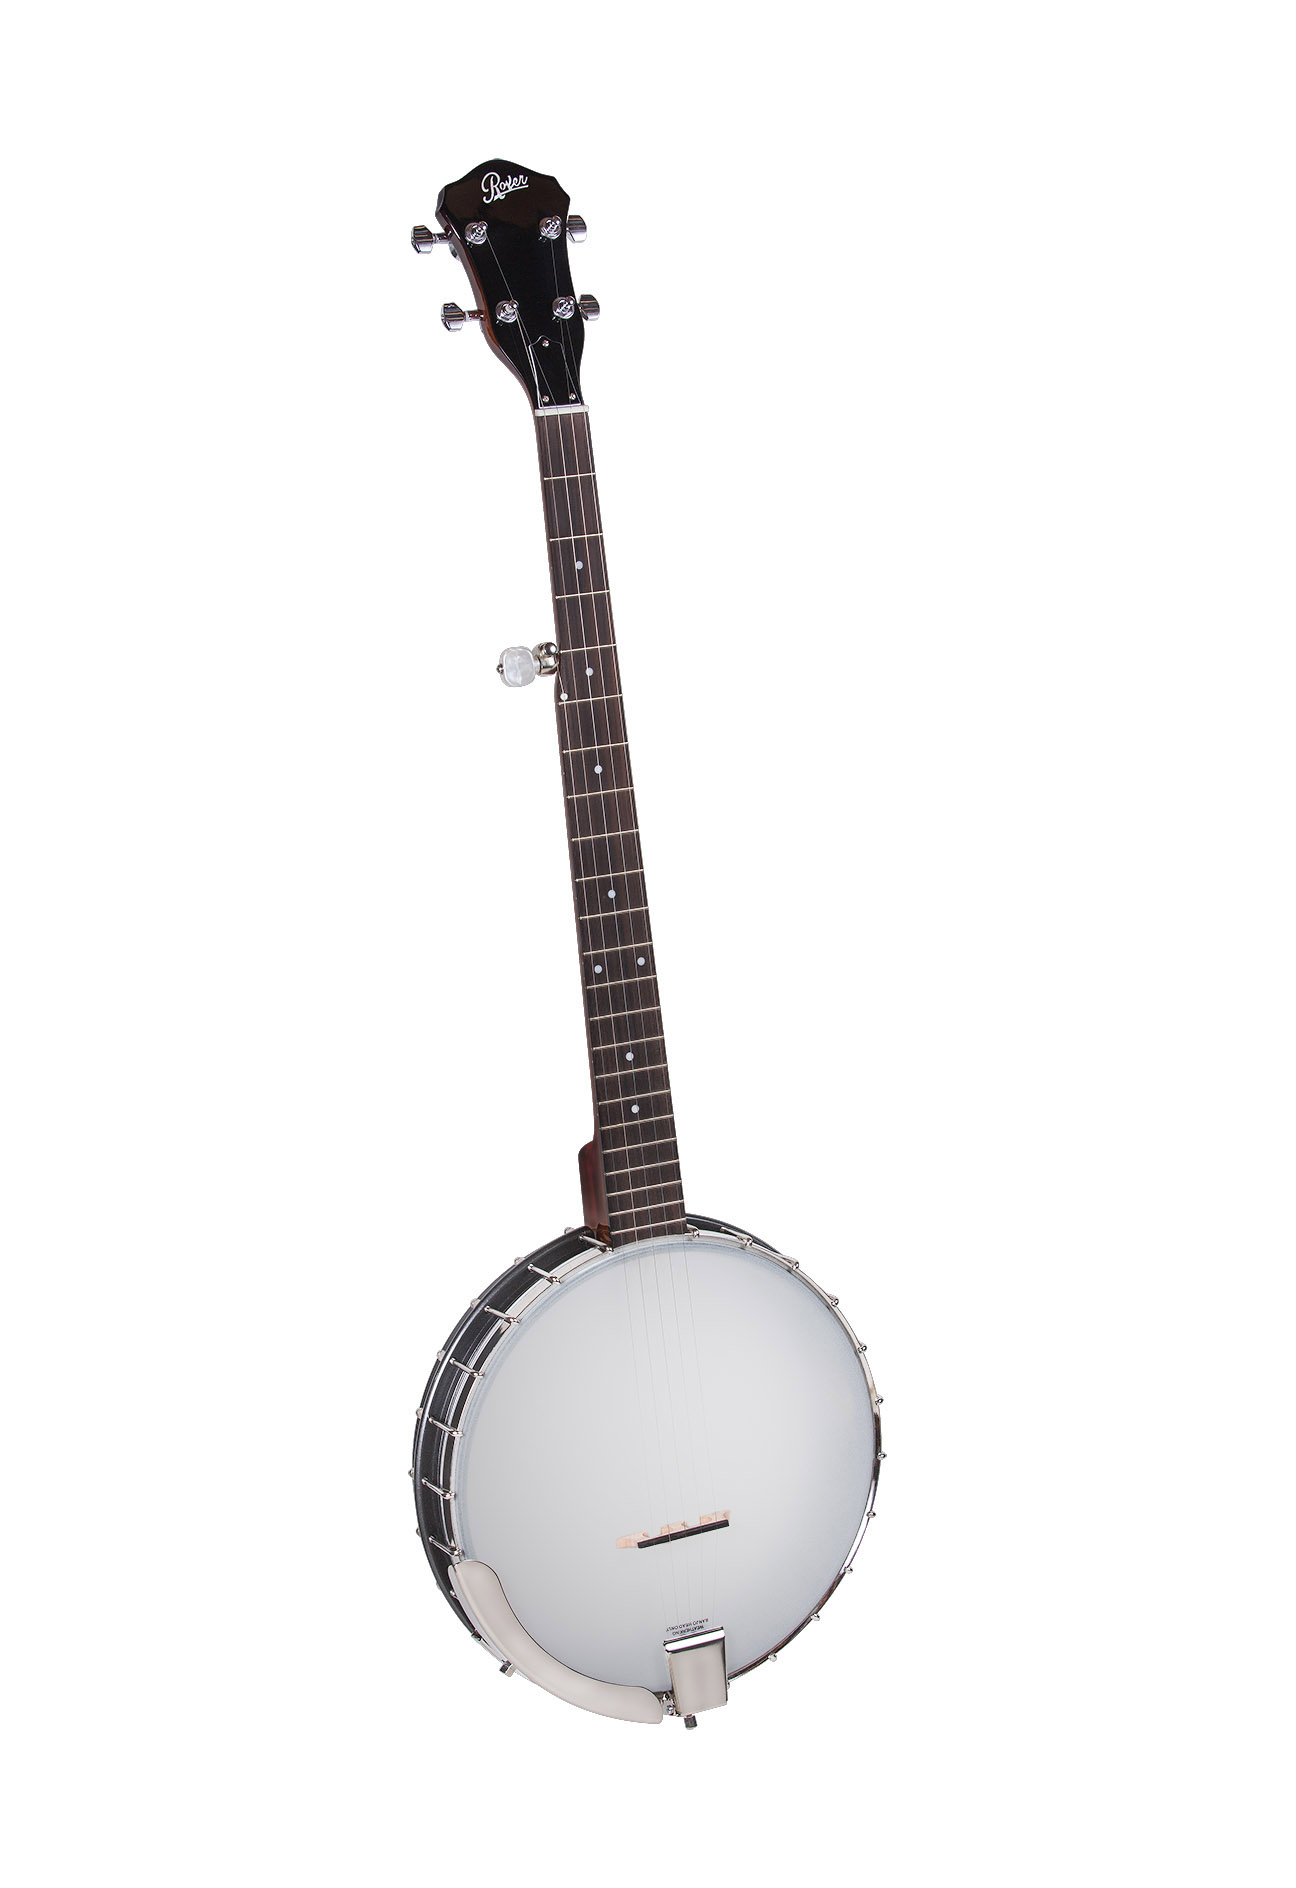 Rover RB-20 five string banjo  Maybe the best choice for beginners!